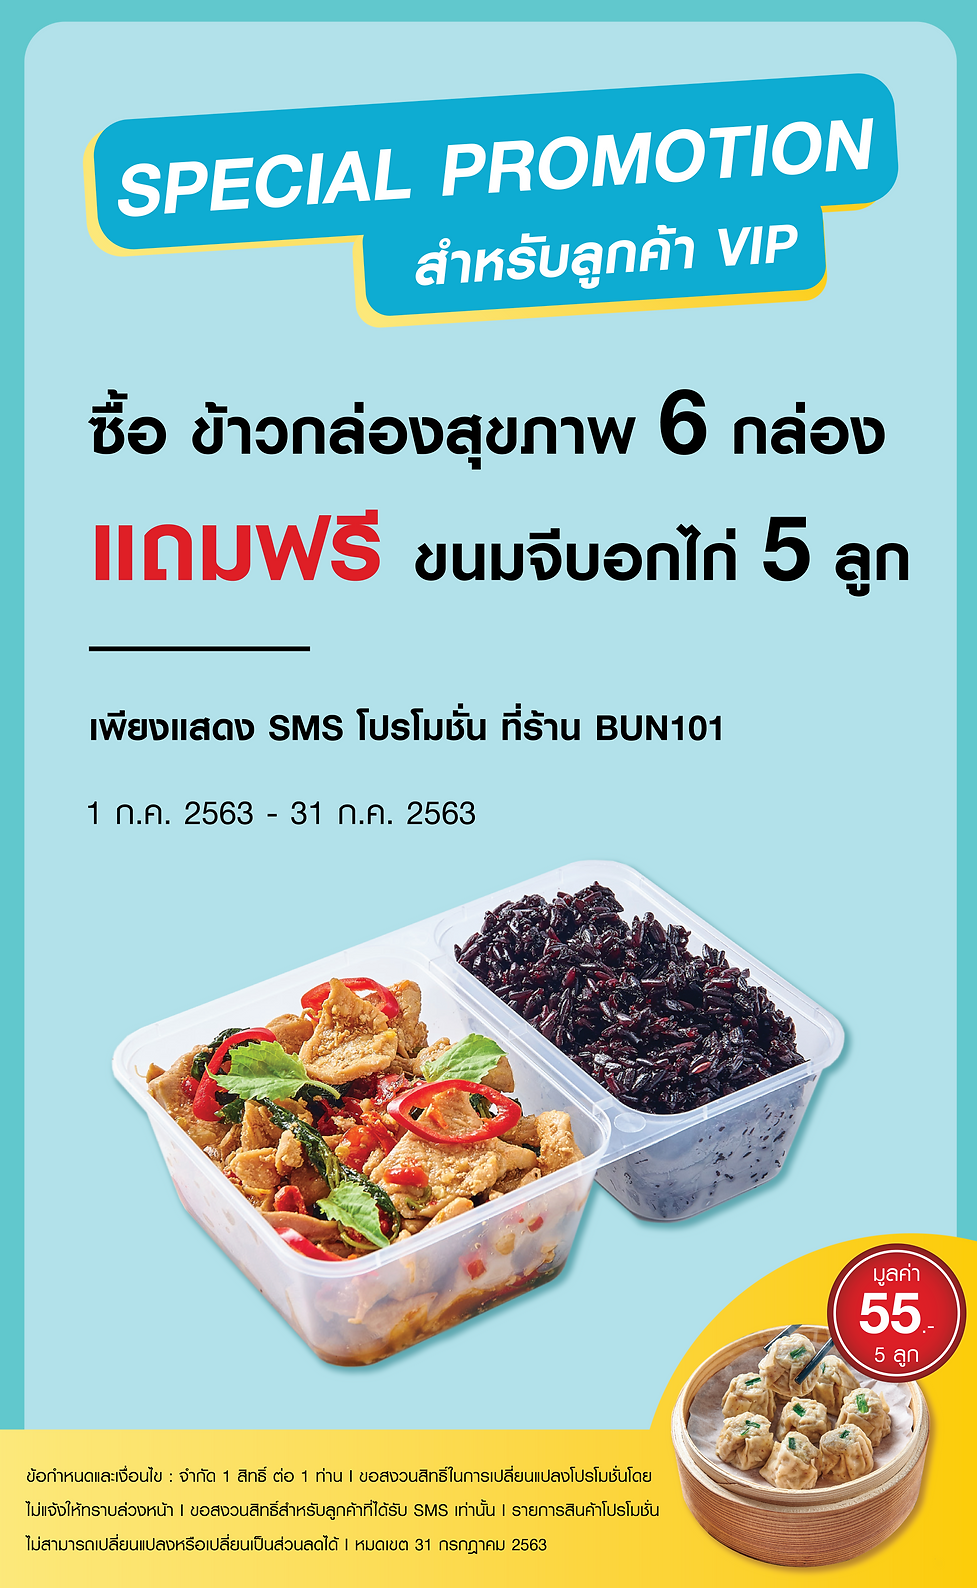 PROMO_MEAL_VIP-02.png